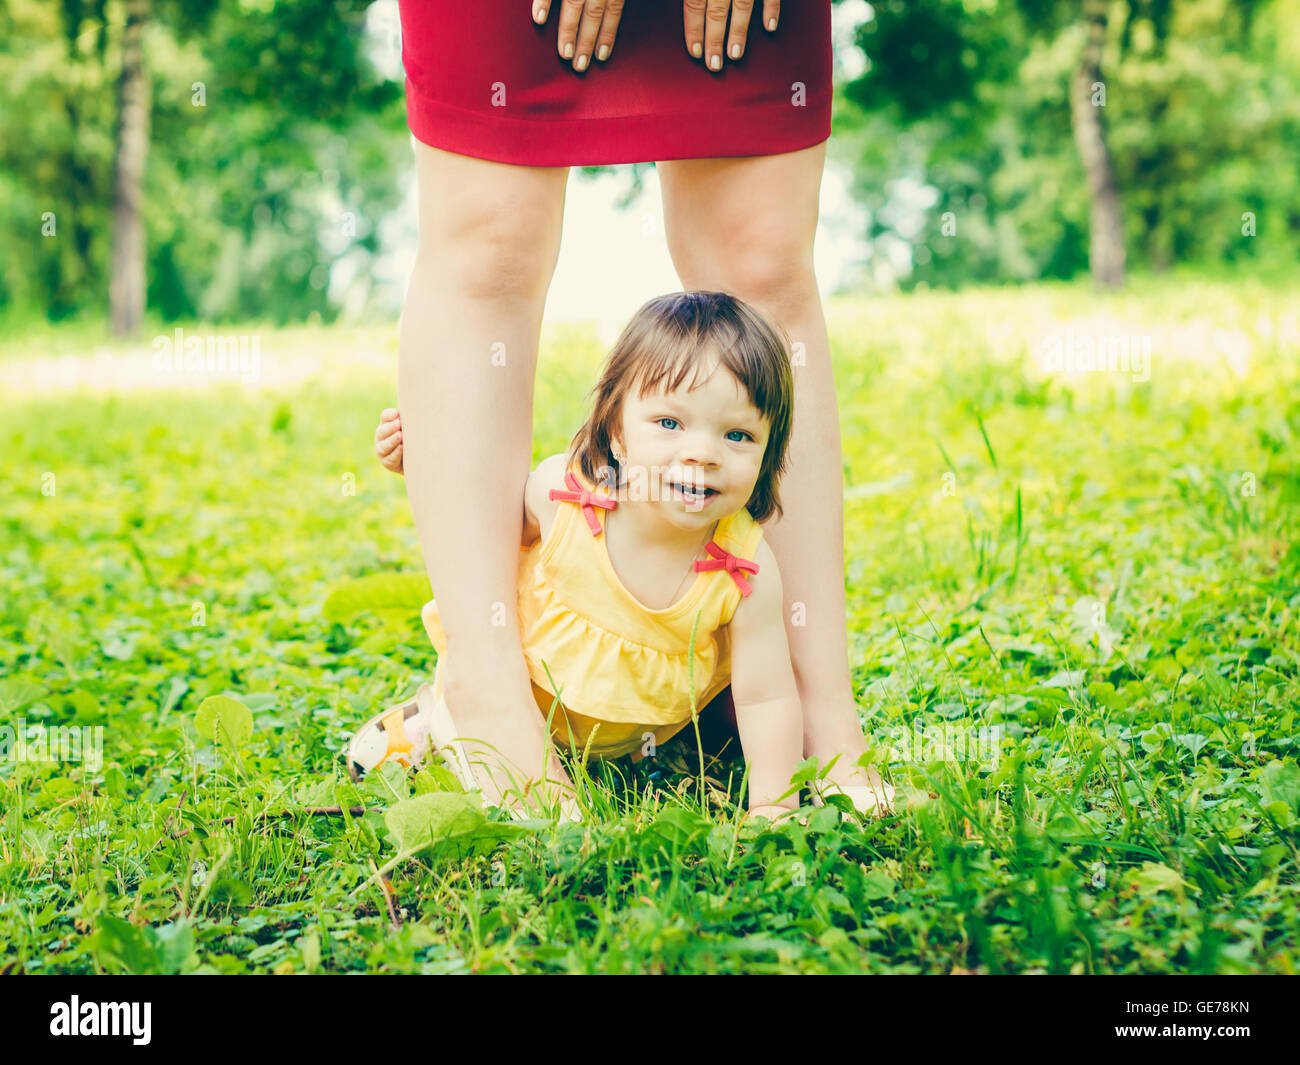 one-year old baby girl between mother legs outdoors - Stock Image